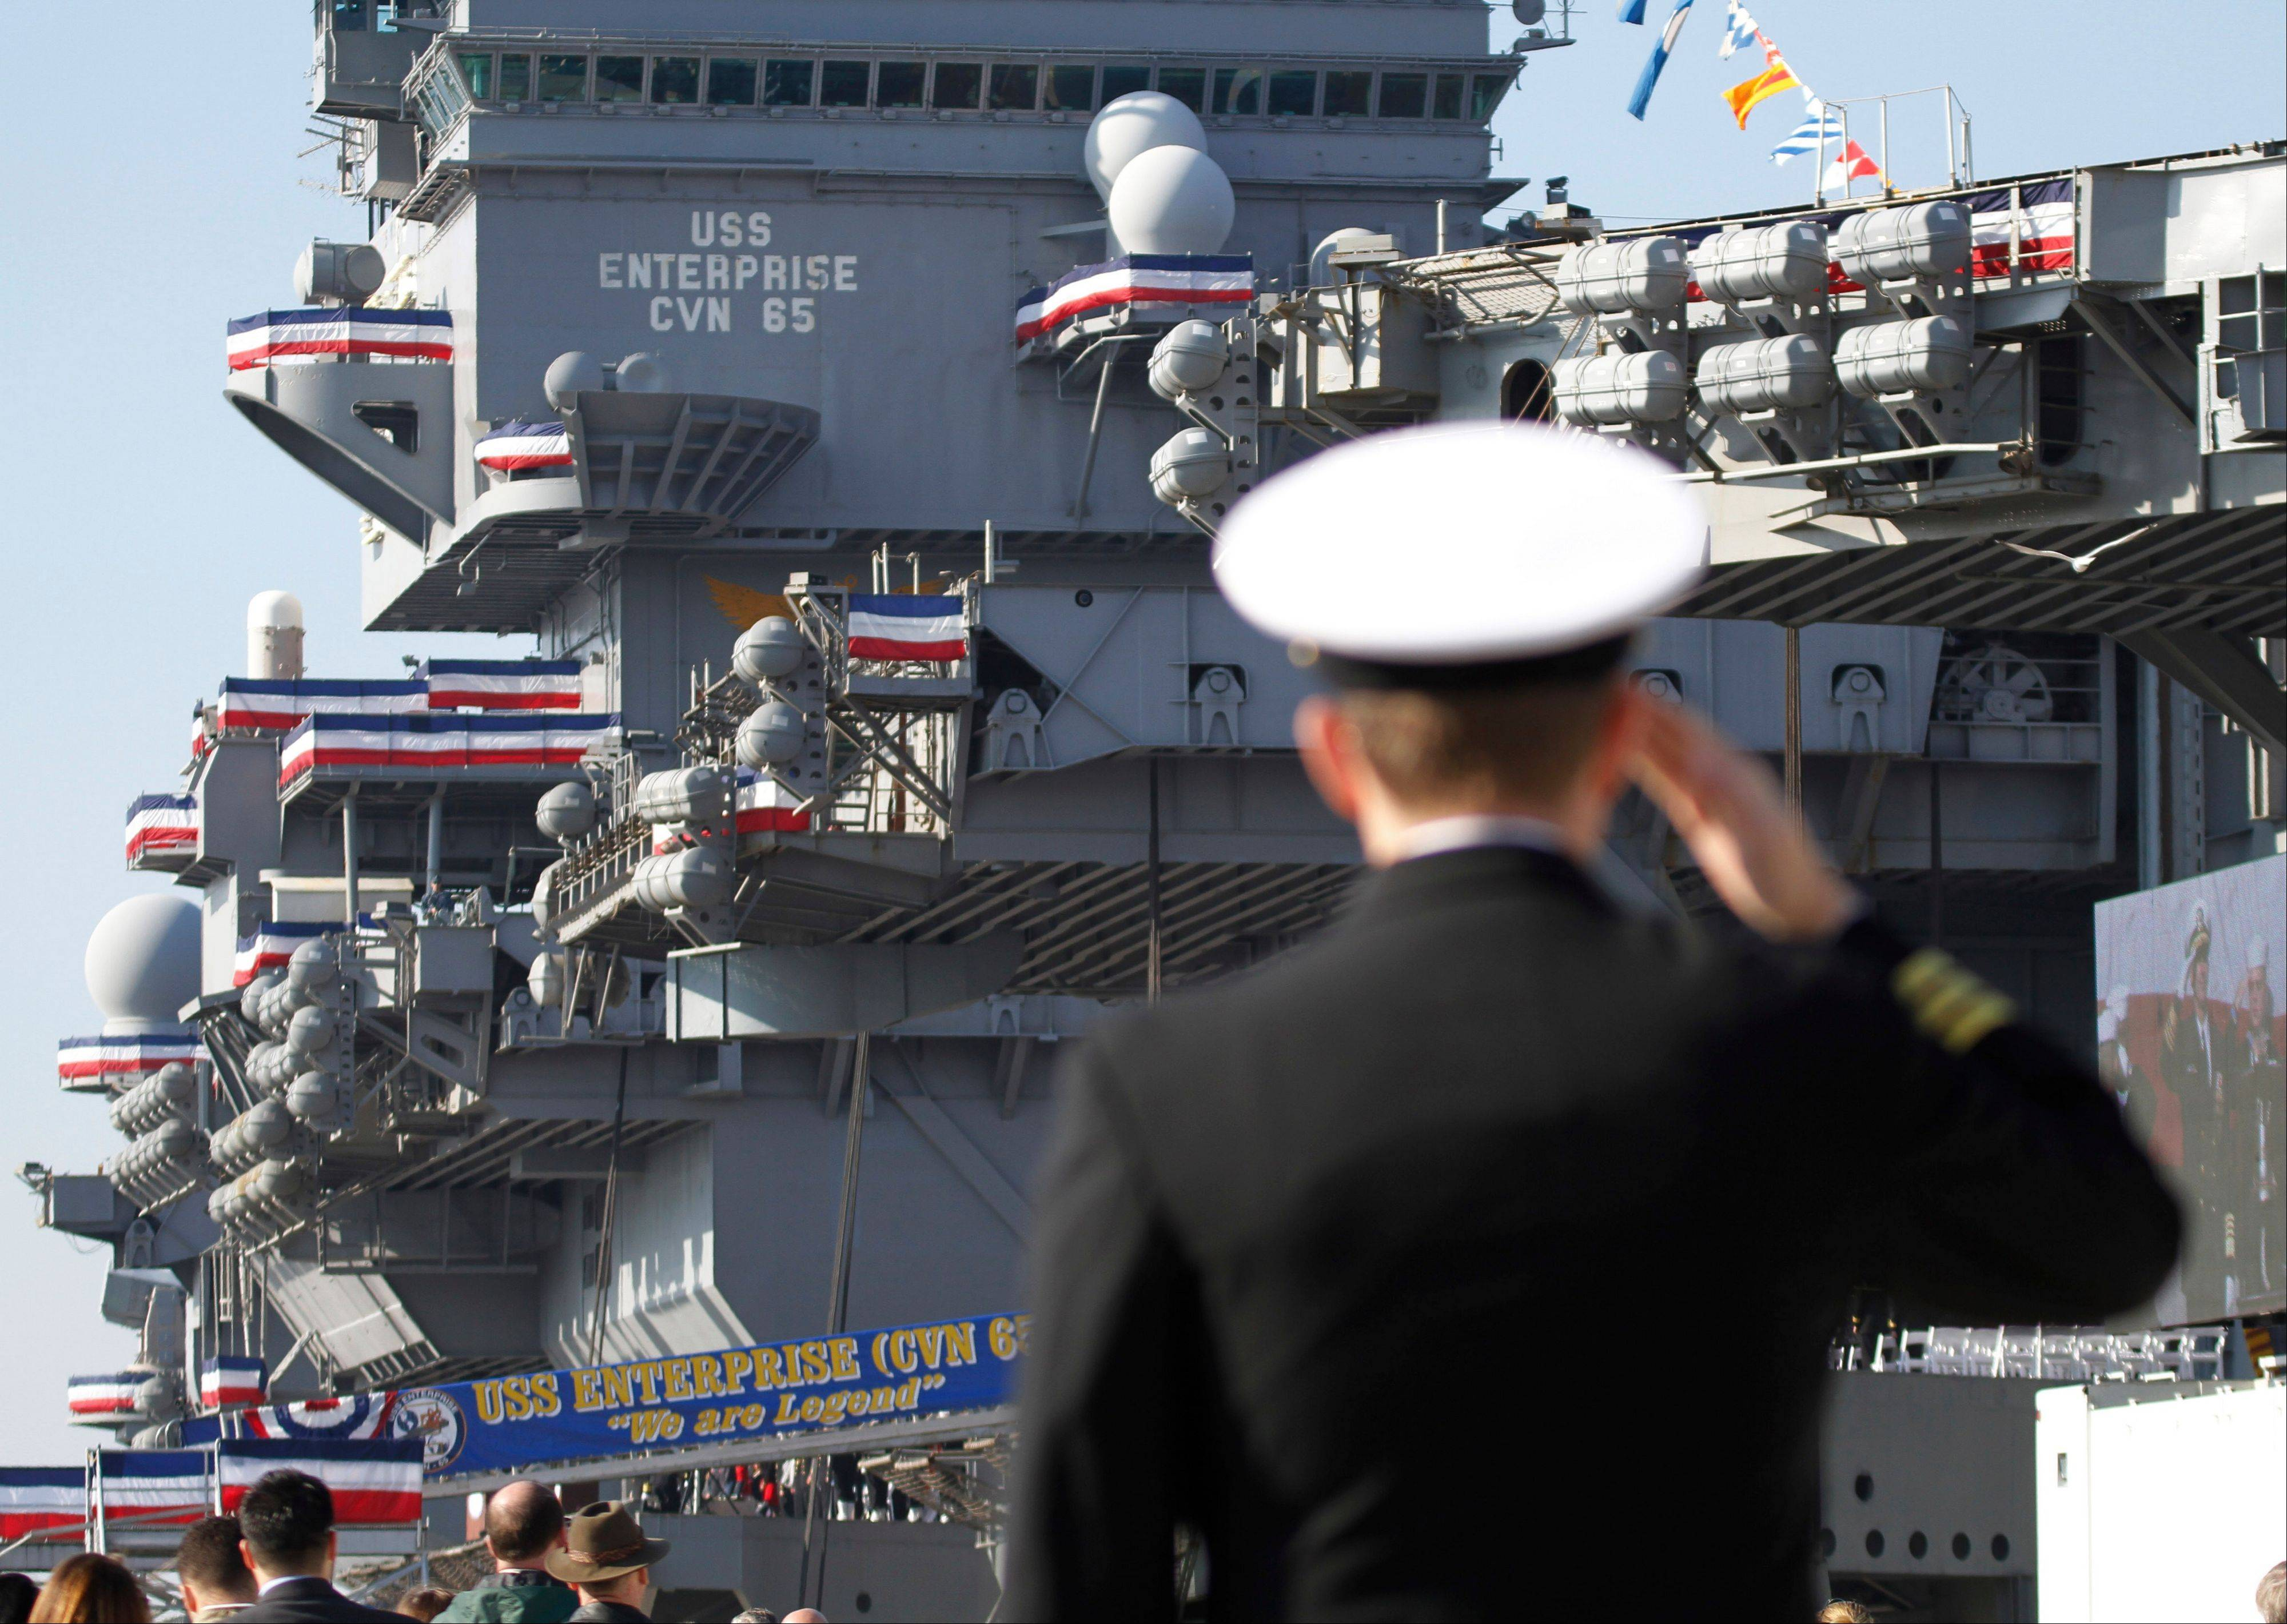 A Navy officer salutes Saturday during the inactivation ceremony for the first nuclear powered aircraft carrier USS Enterprise at Naval Station Norfolk in Norfolk, Va. The ship served in the fleet for 51 years.